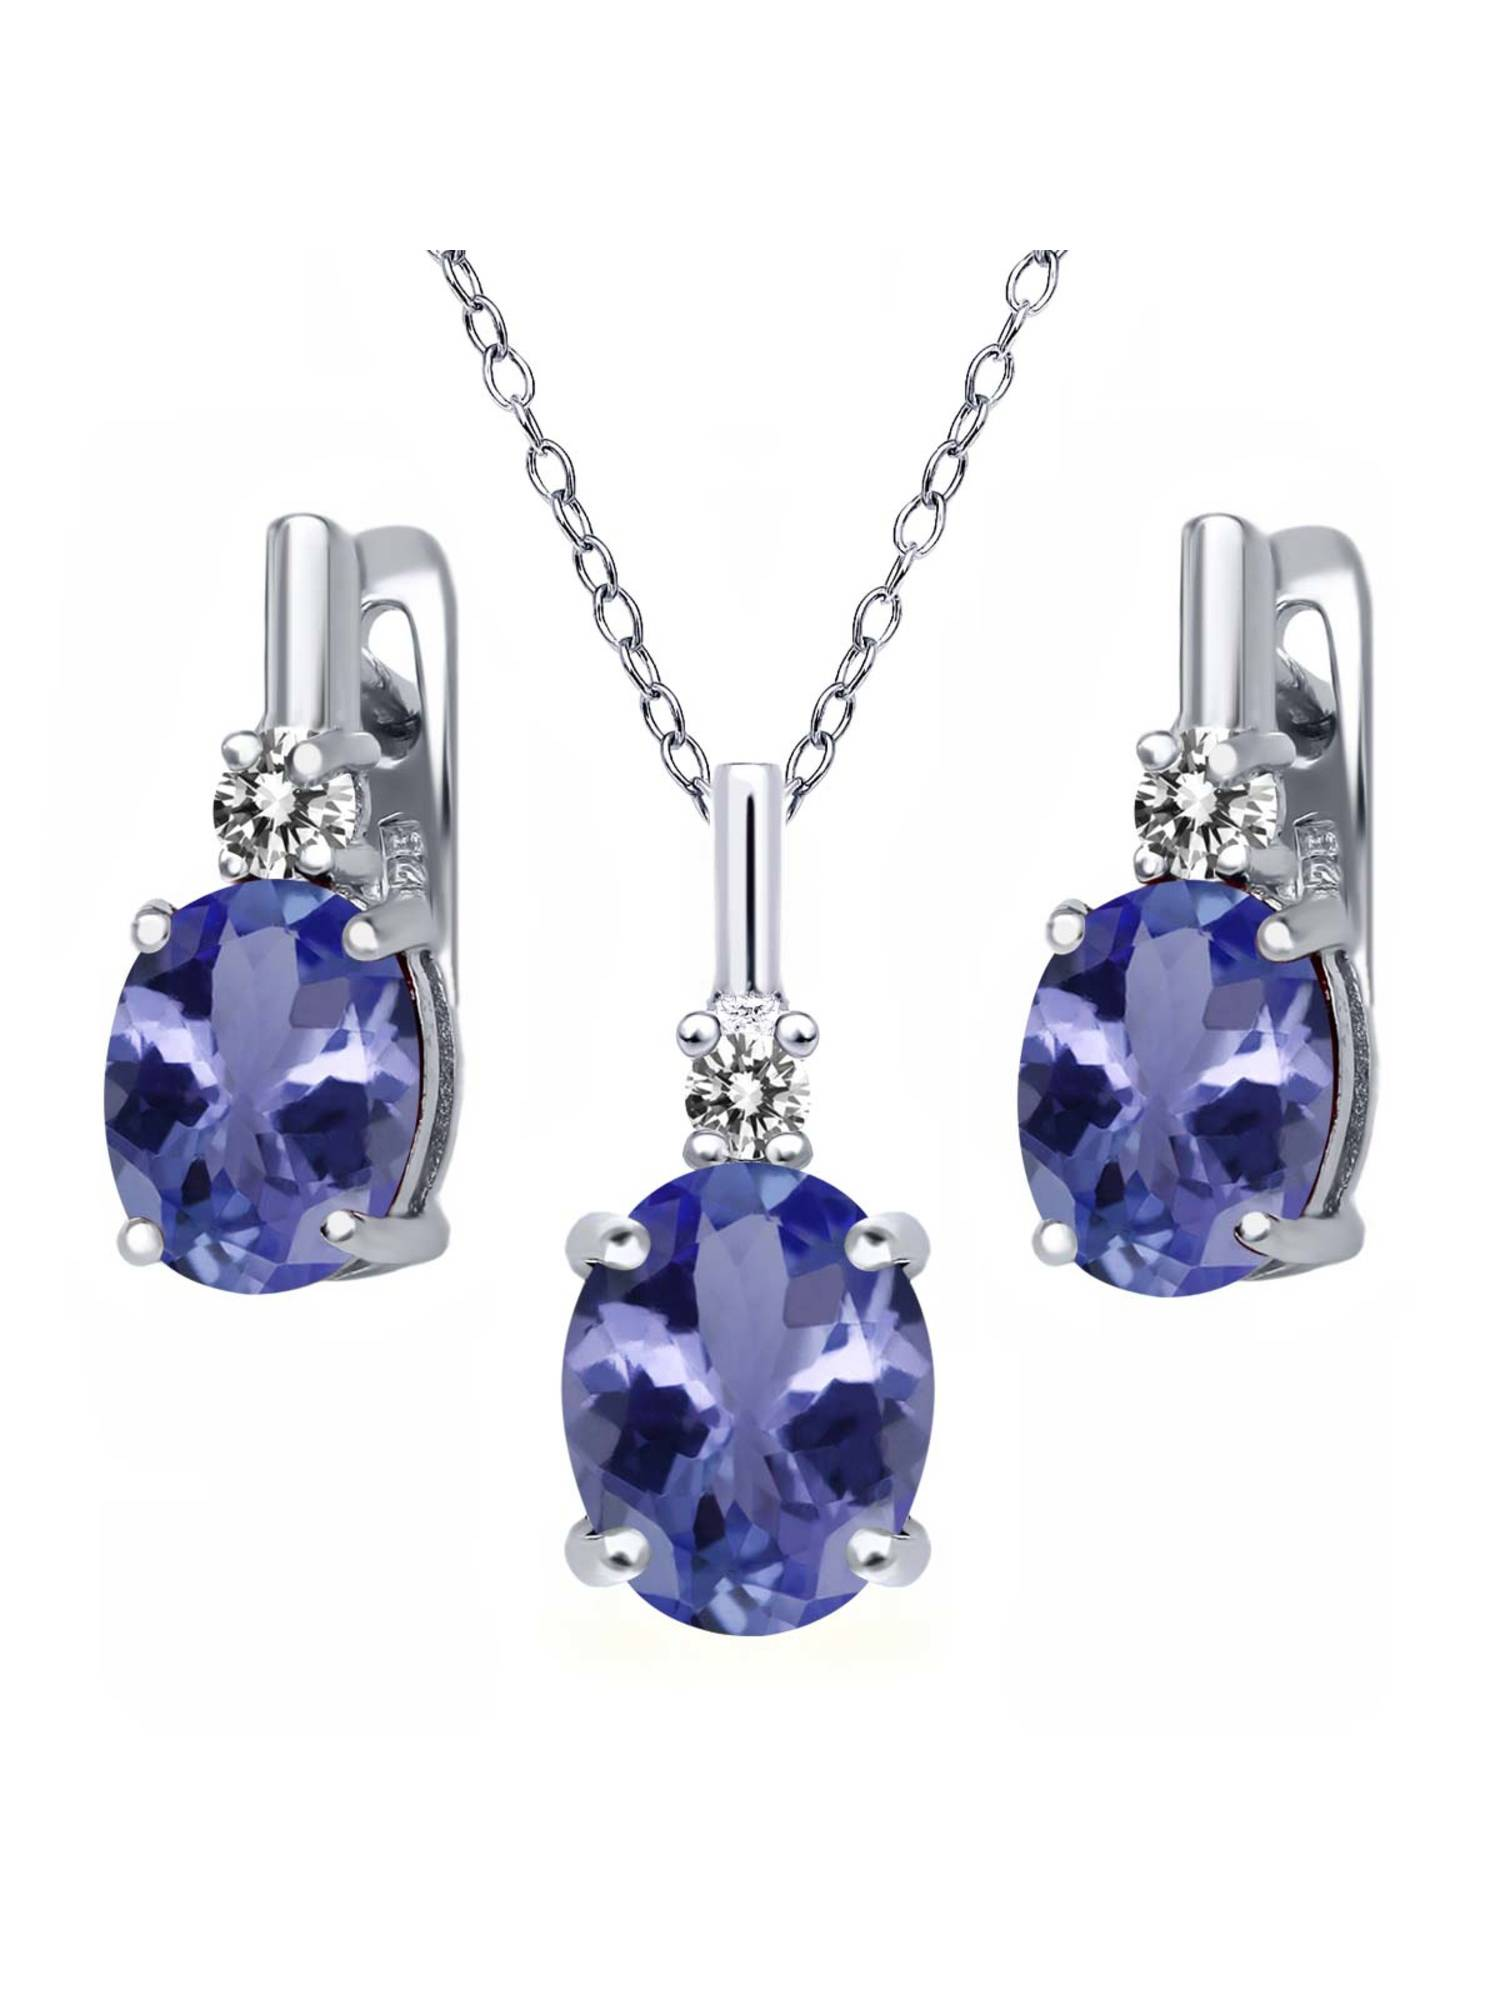 5.17 Ct Blue Tanzanite AAAA White Diamond 925 Silver Pendant Earrings Set by